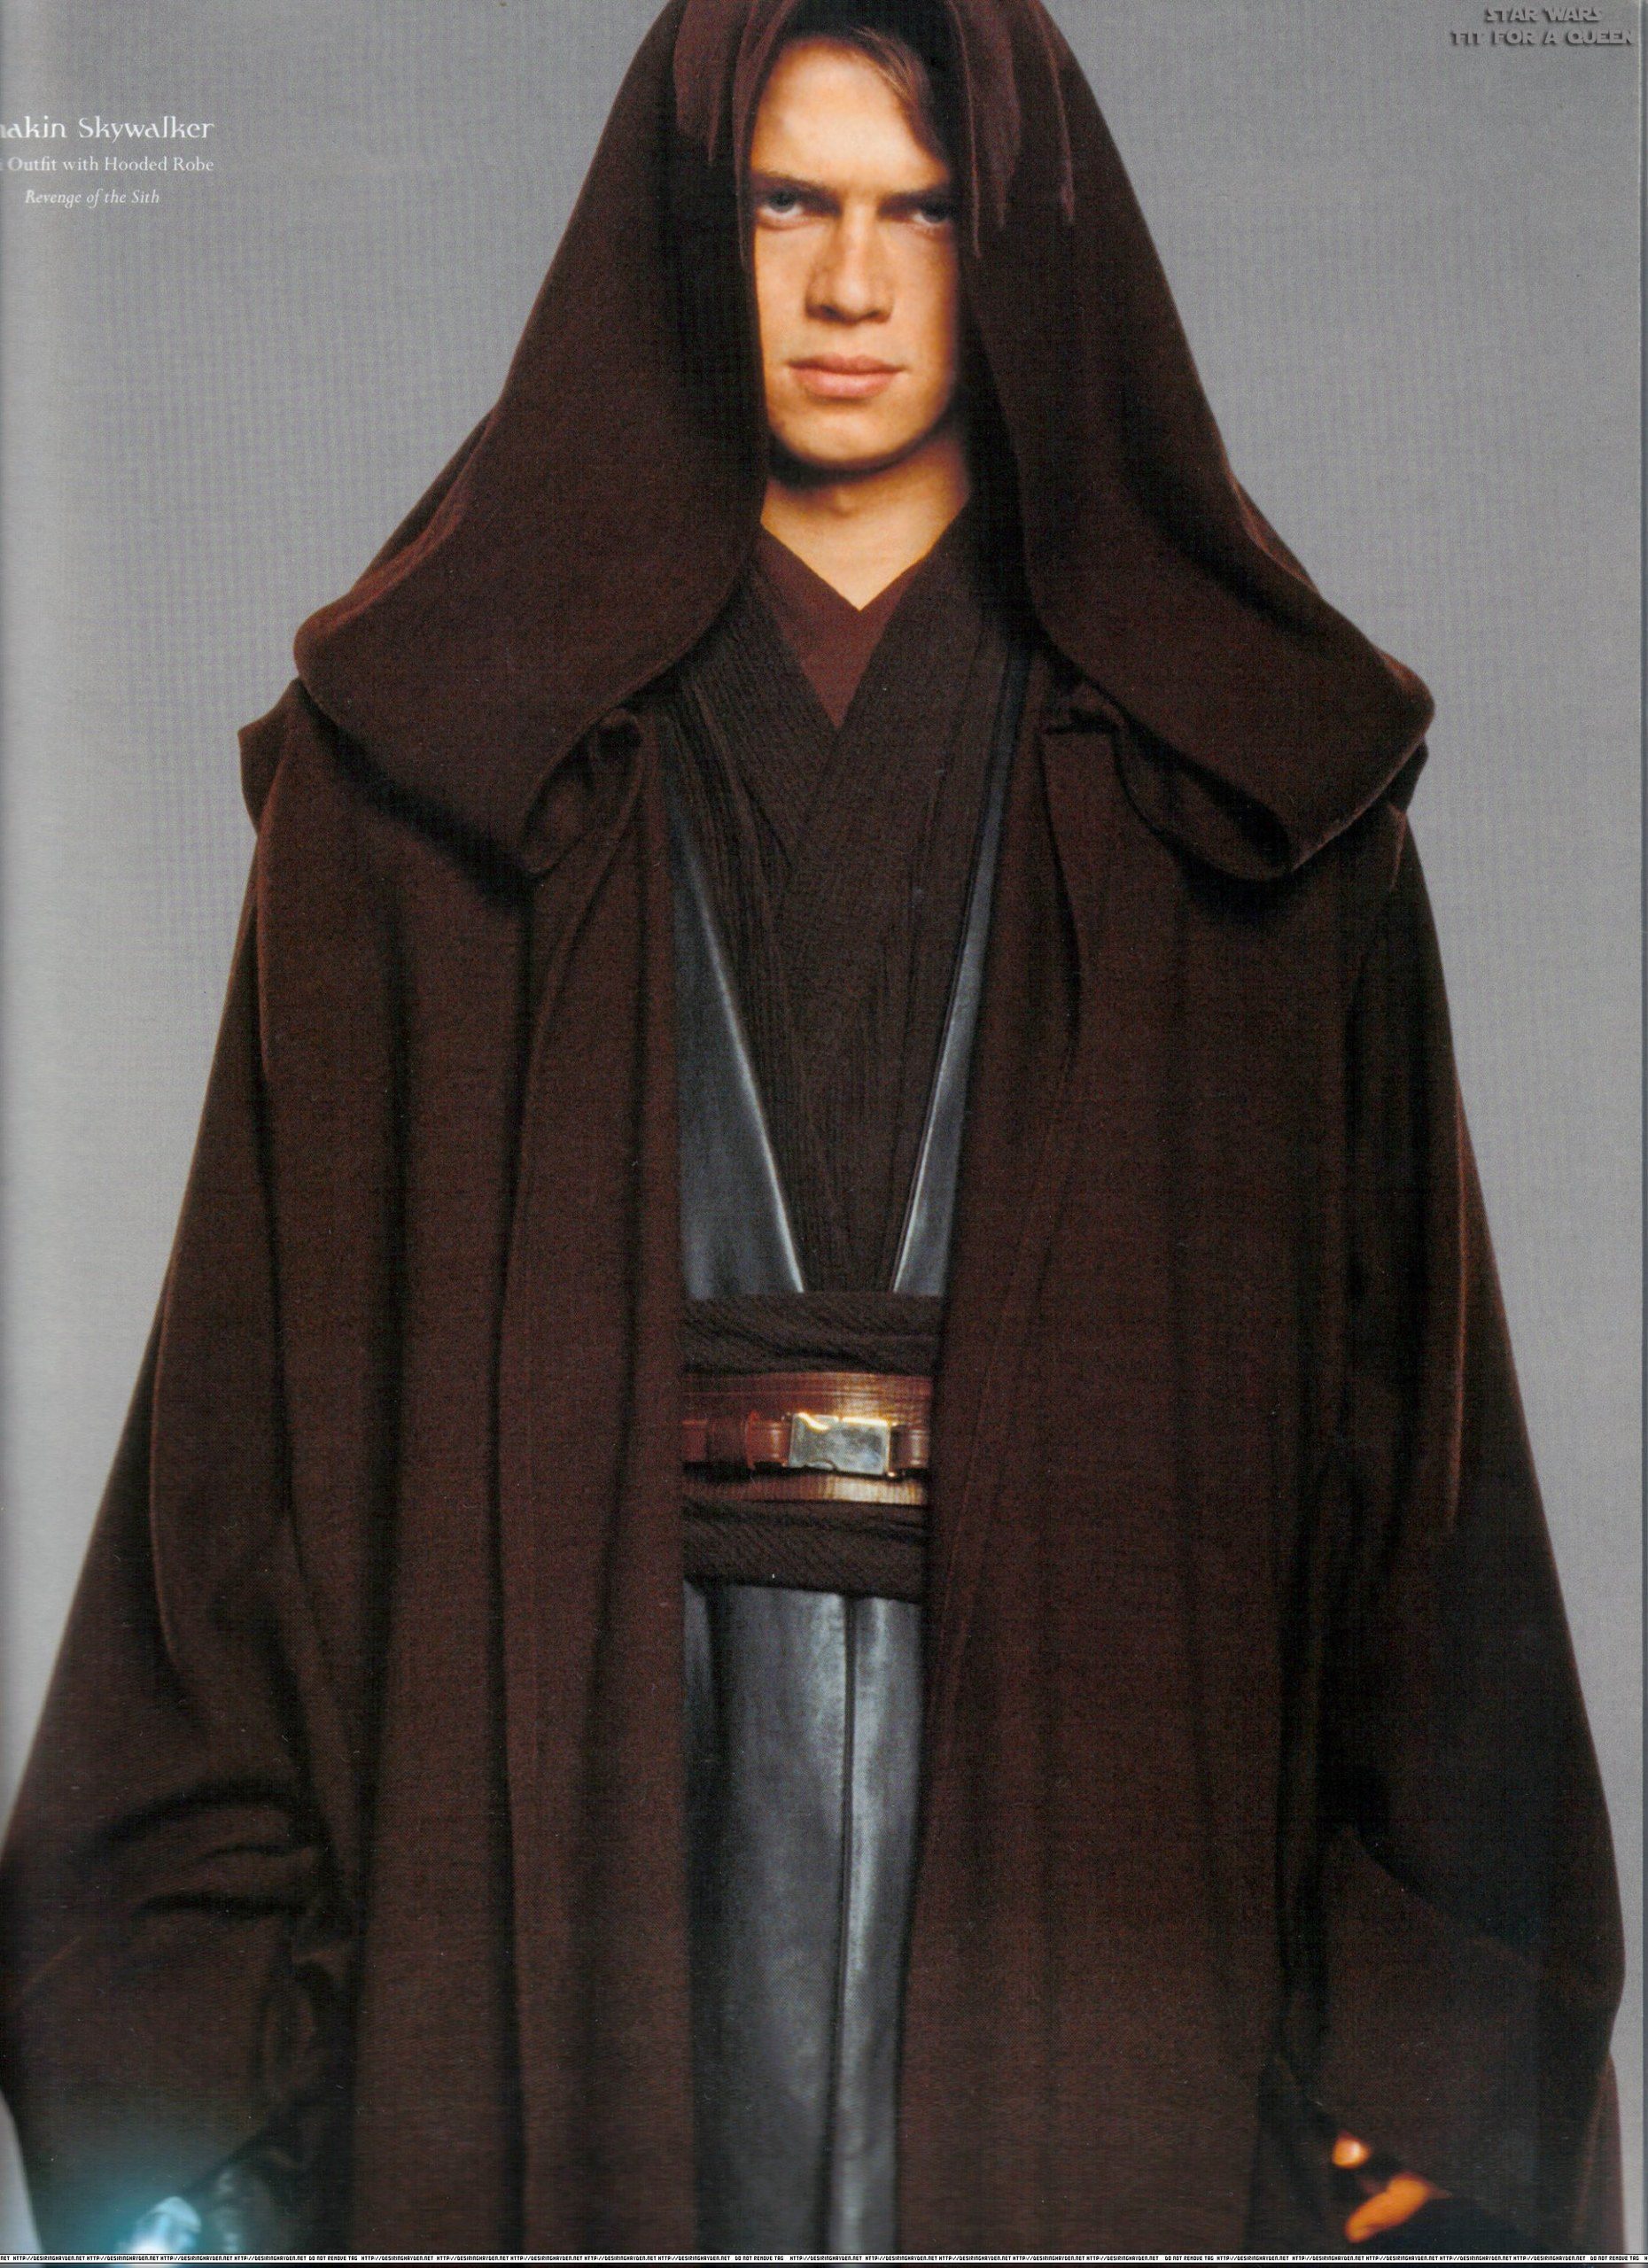 Request Episode Iii Anakin Skywalker Style Robes Archive Star